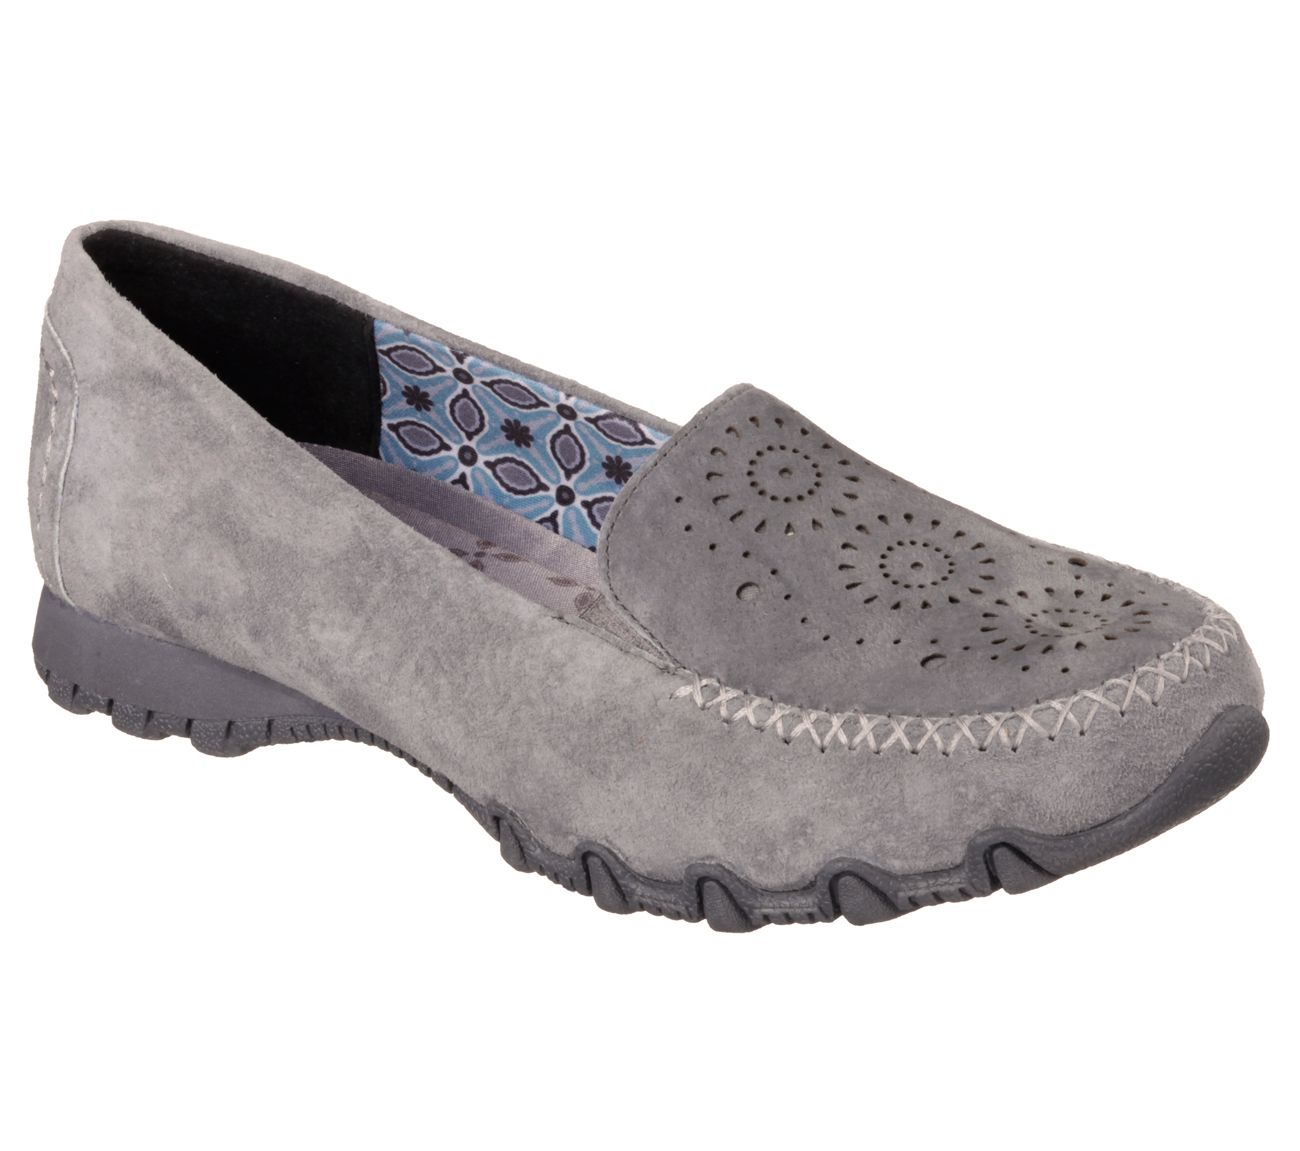 Relaxed fit bikers traffic skechers relaxed fit